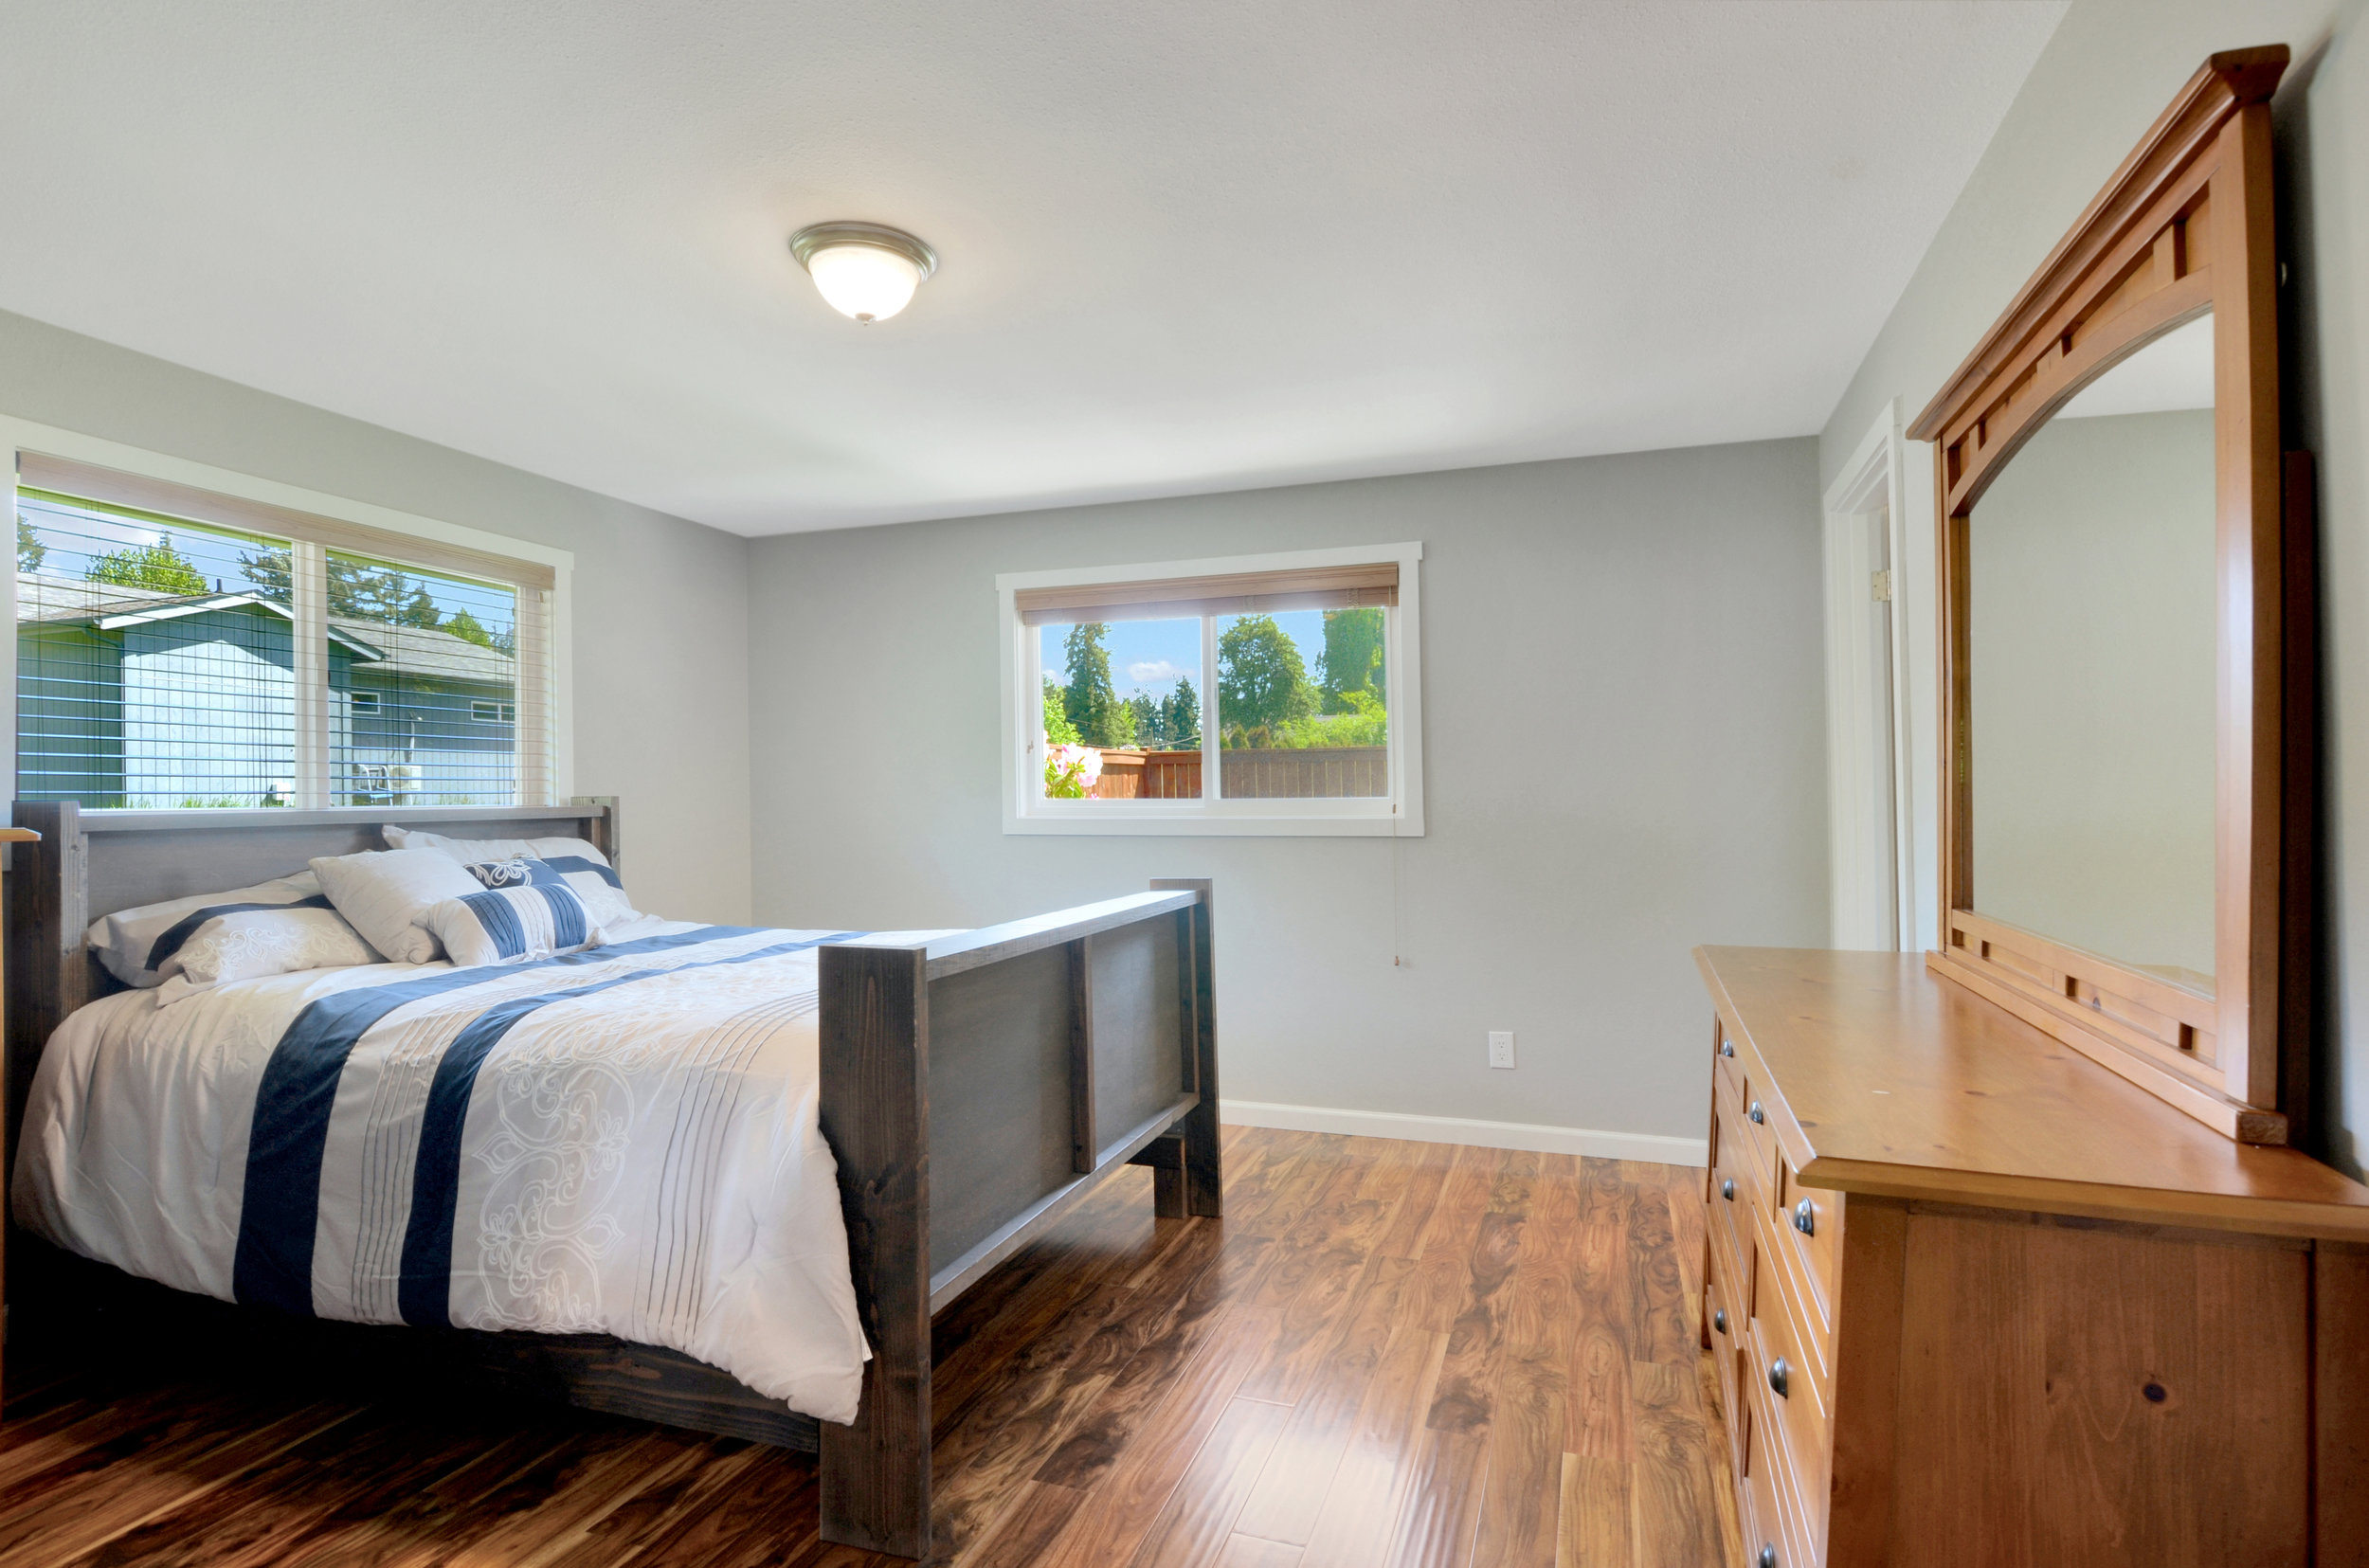 The homeowners considered adding French doors from this bedroom to go straight out to the area where a hot tub could be installed.